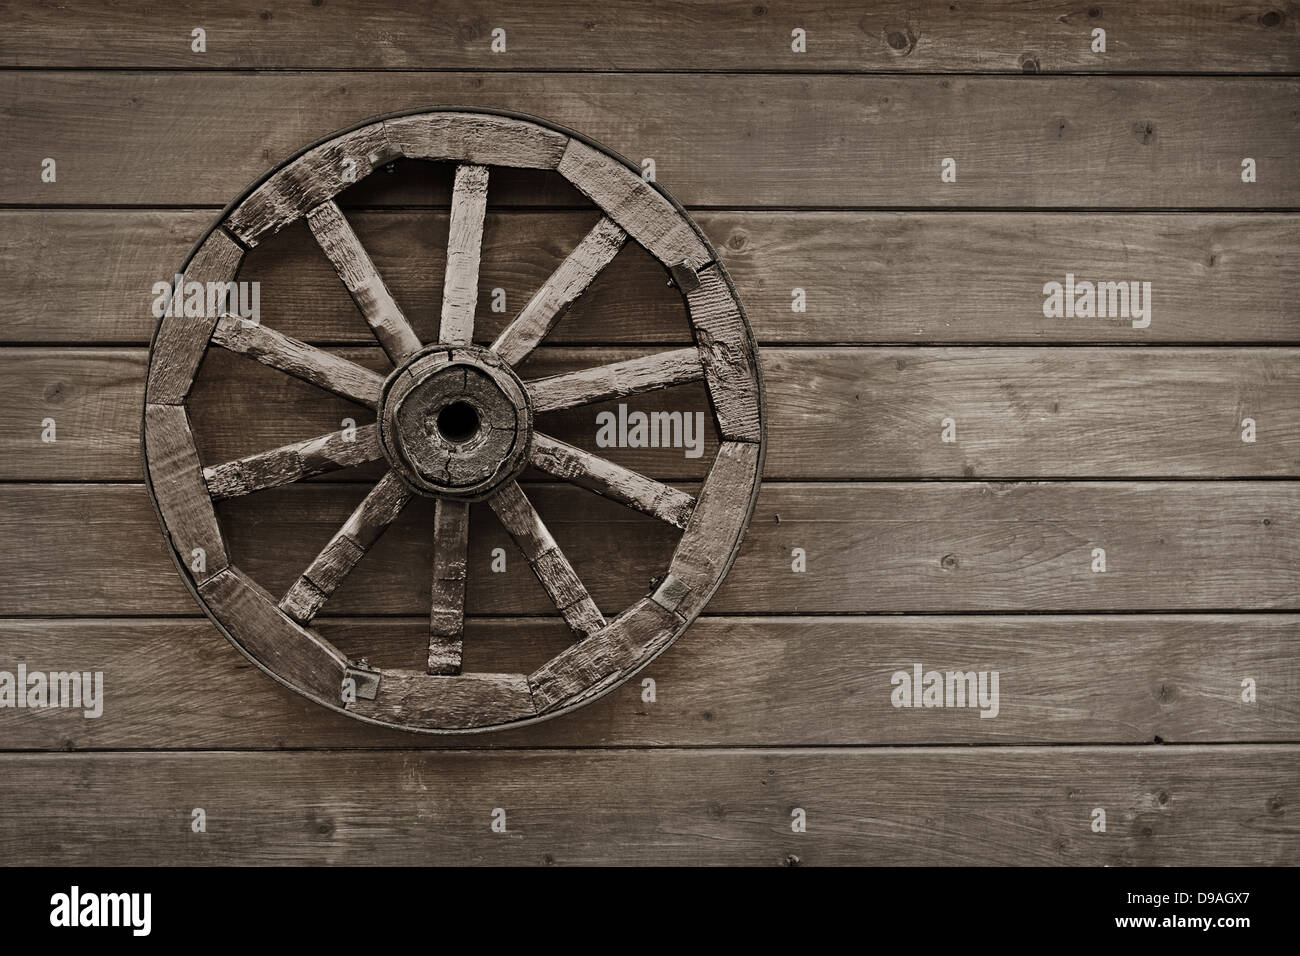 old wooden wagon wheel stockfotos old wooden wagon wheel bilder alamy. Black Bedroom Furniture Sets. Home Design Ideas